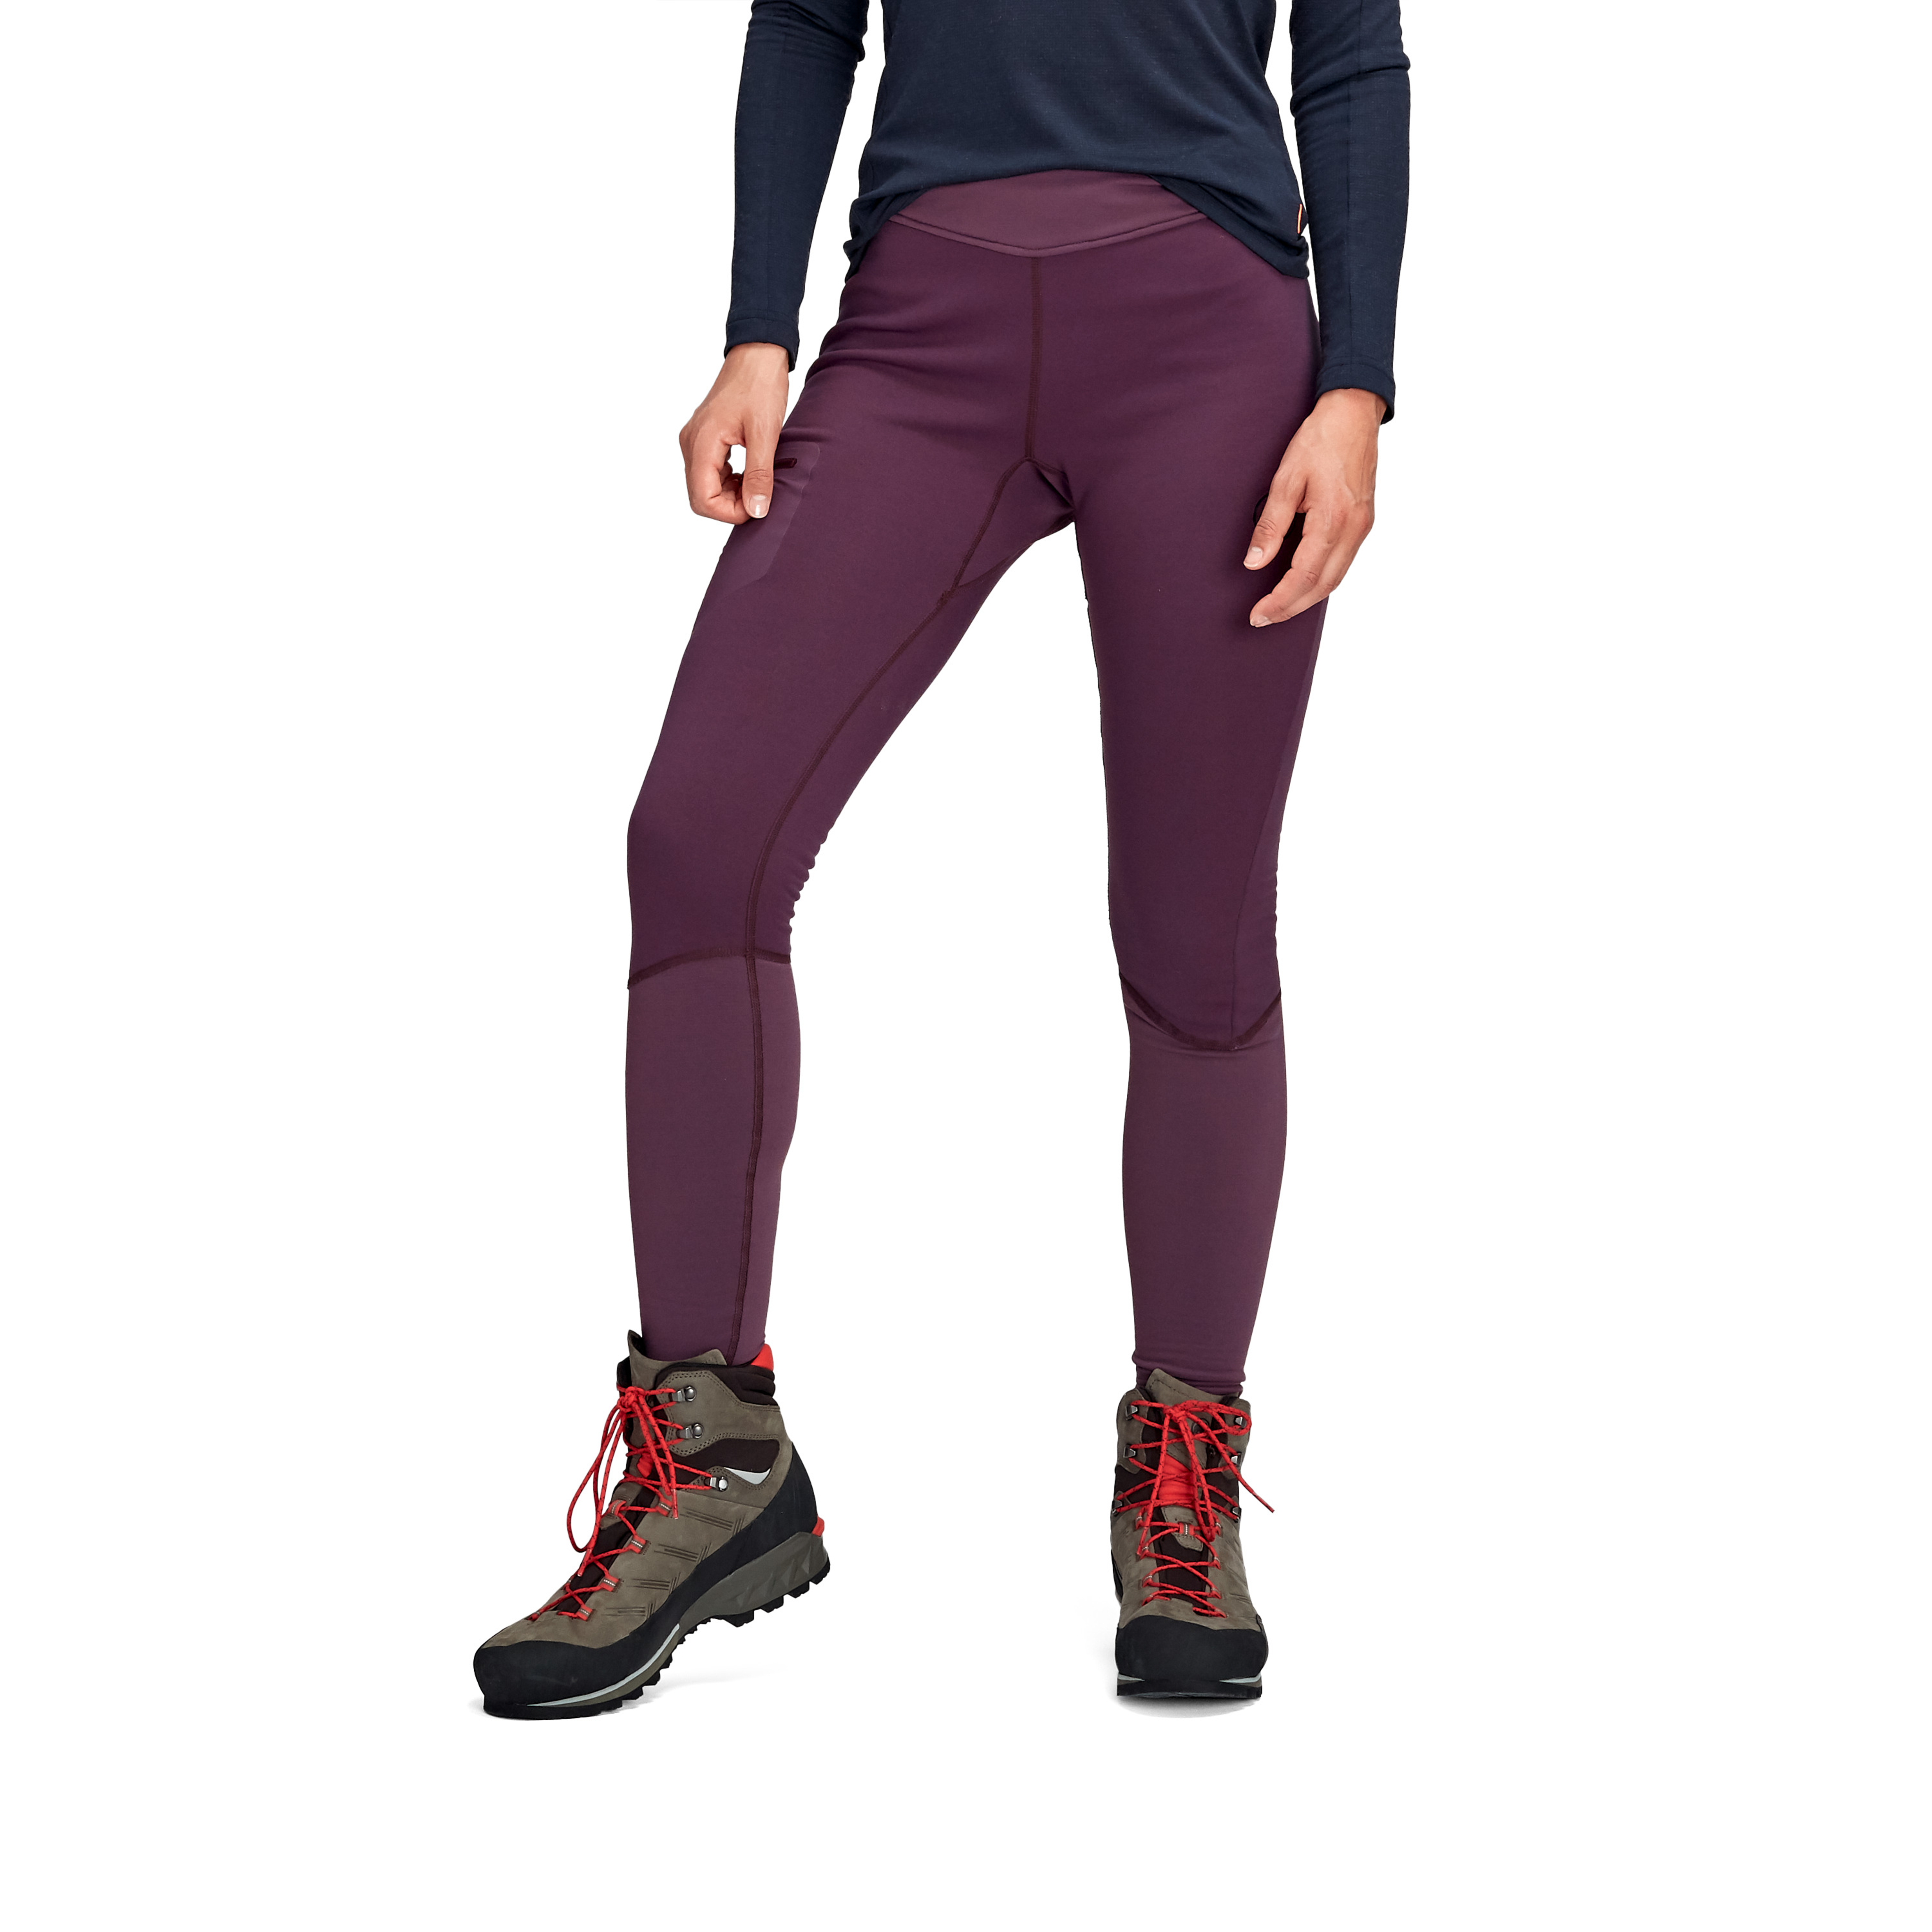 Aconcagua ML Tights long Women product image